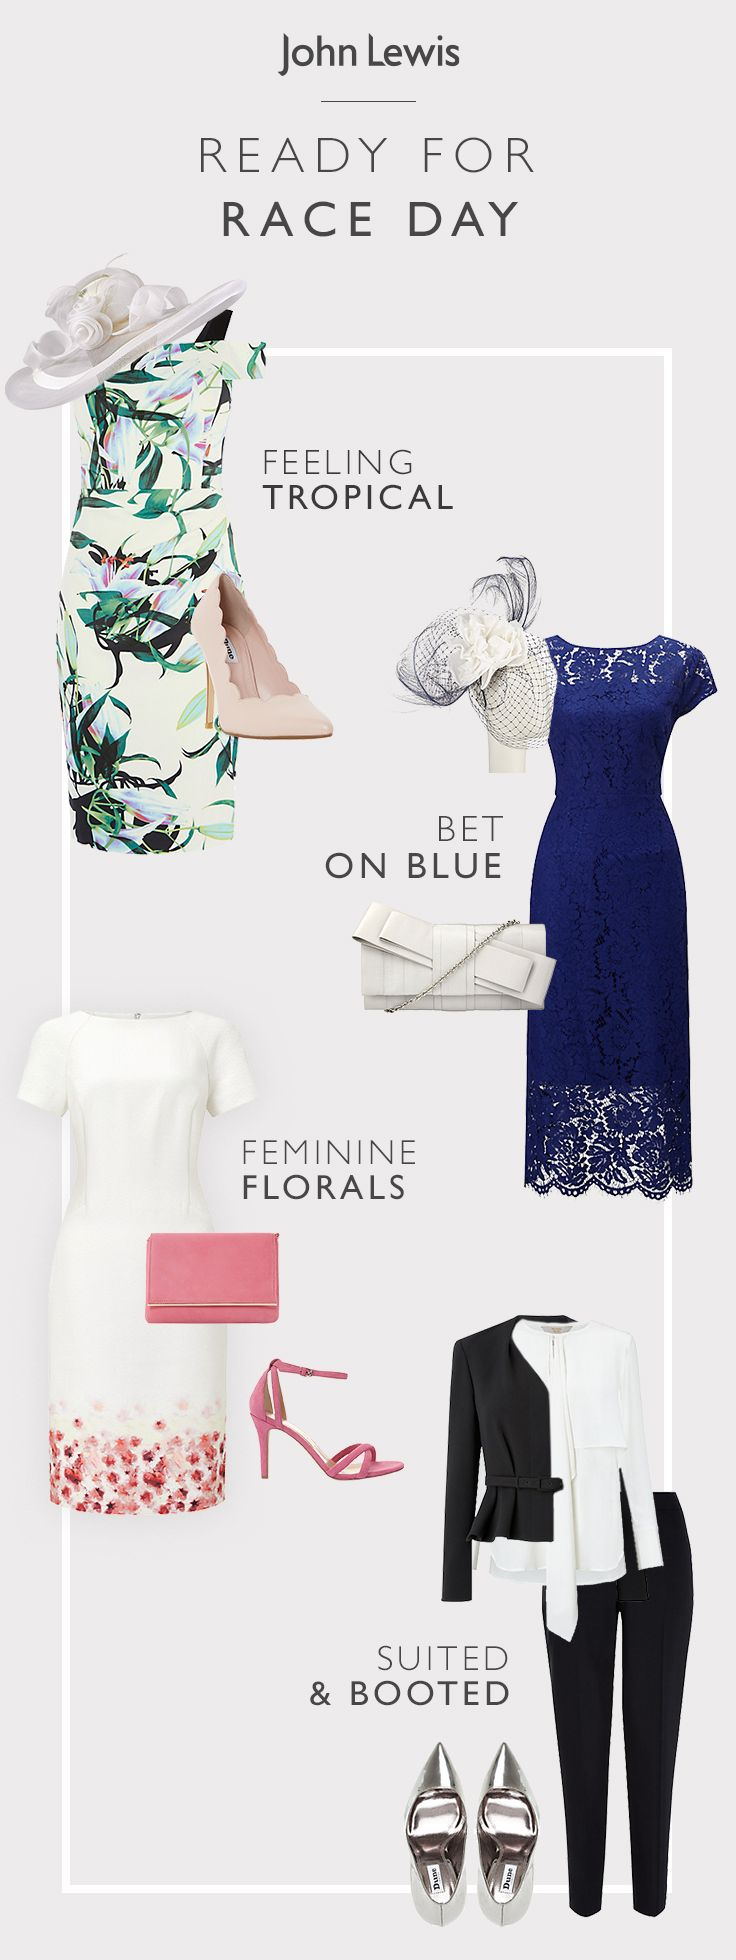 Race to the finish with our range of outfits and accessories. Whether you are feeling tropical or wanting to make a bold colour statement, we have everything to get you suited and booted ready for race day. Match with a stylish clutch, shoes and fascinator or occasional hat to complete your look this season.